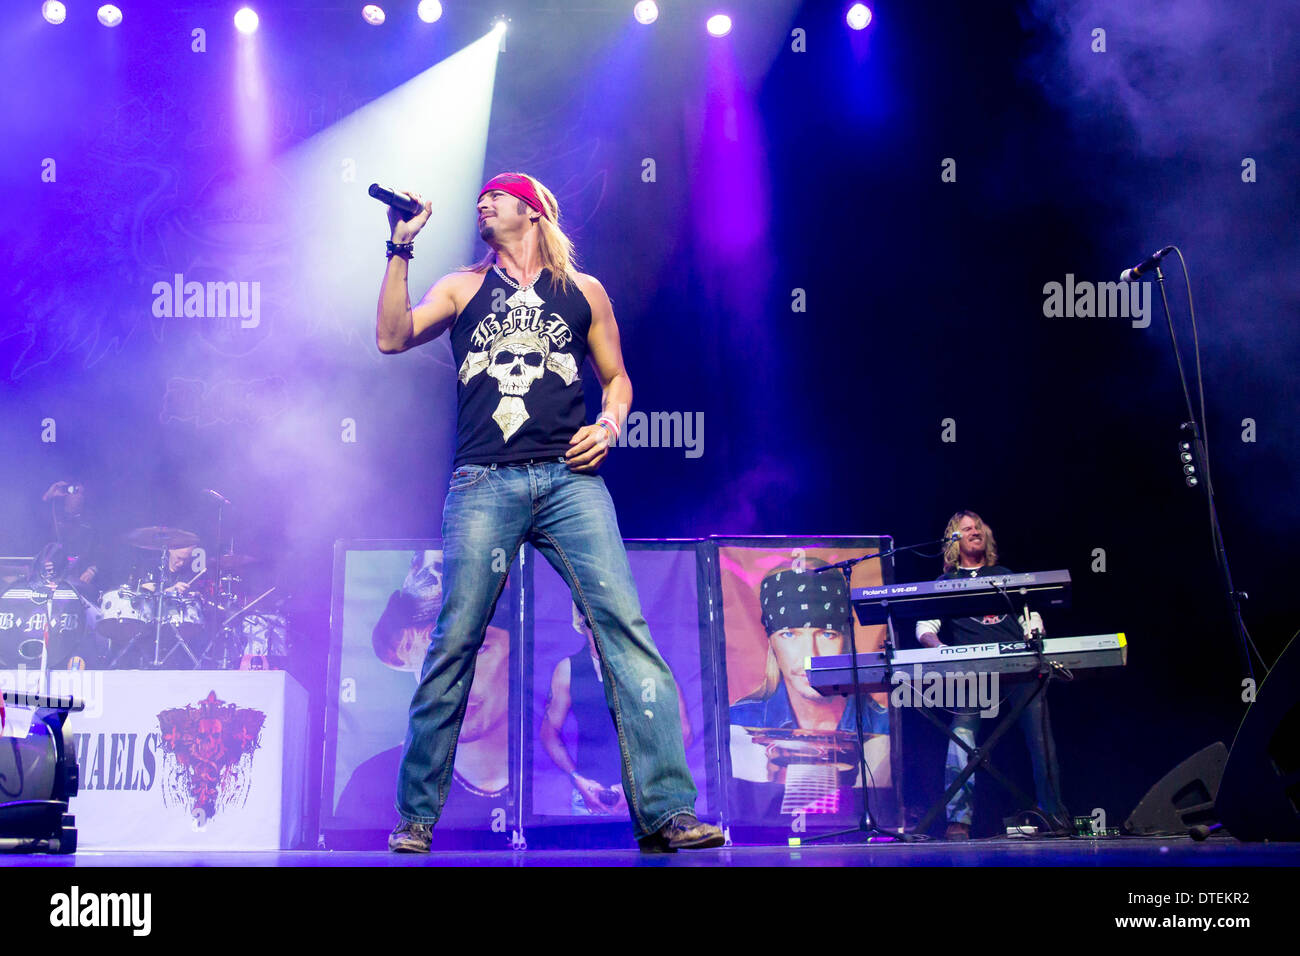 Brett michaels motor city casino brezzes casino